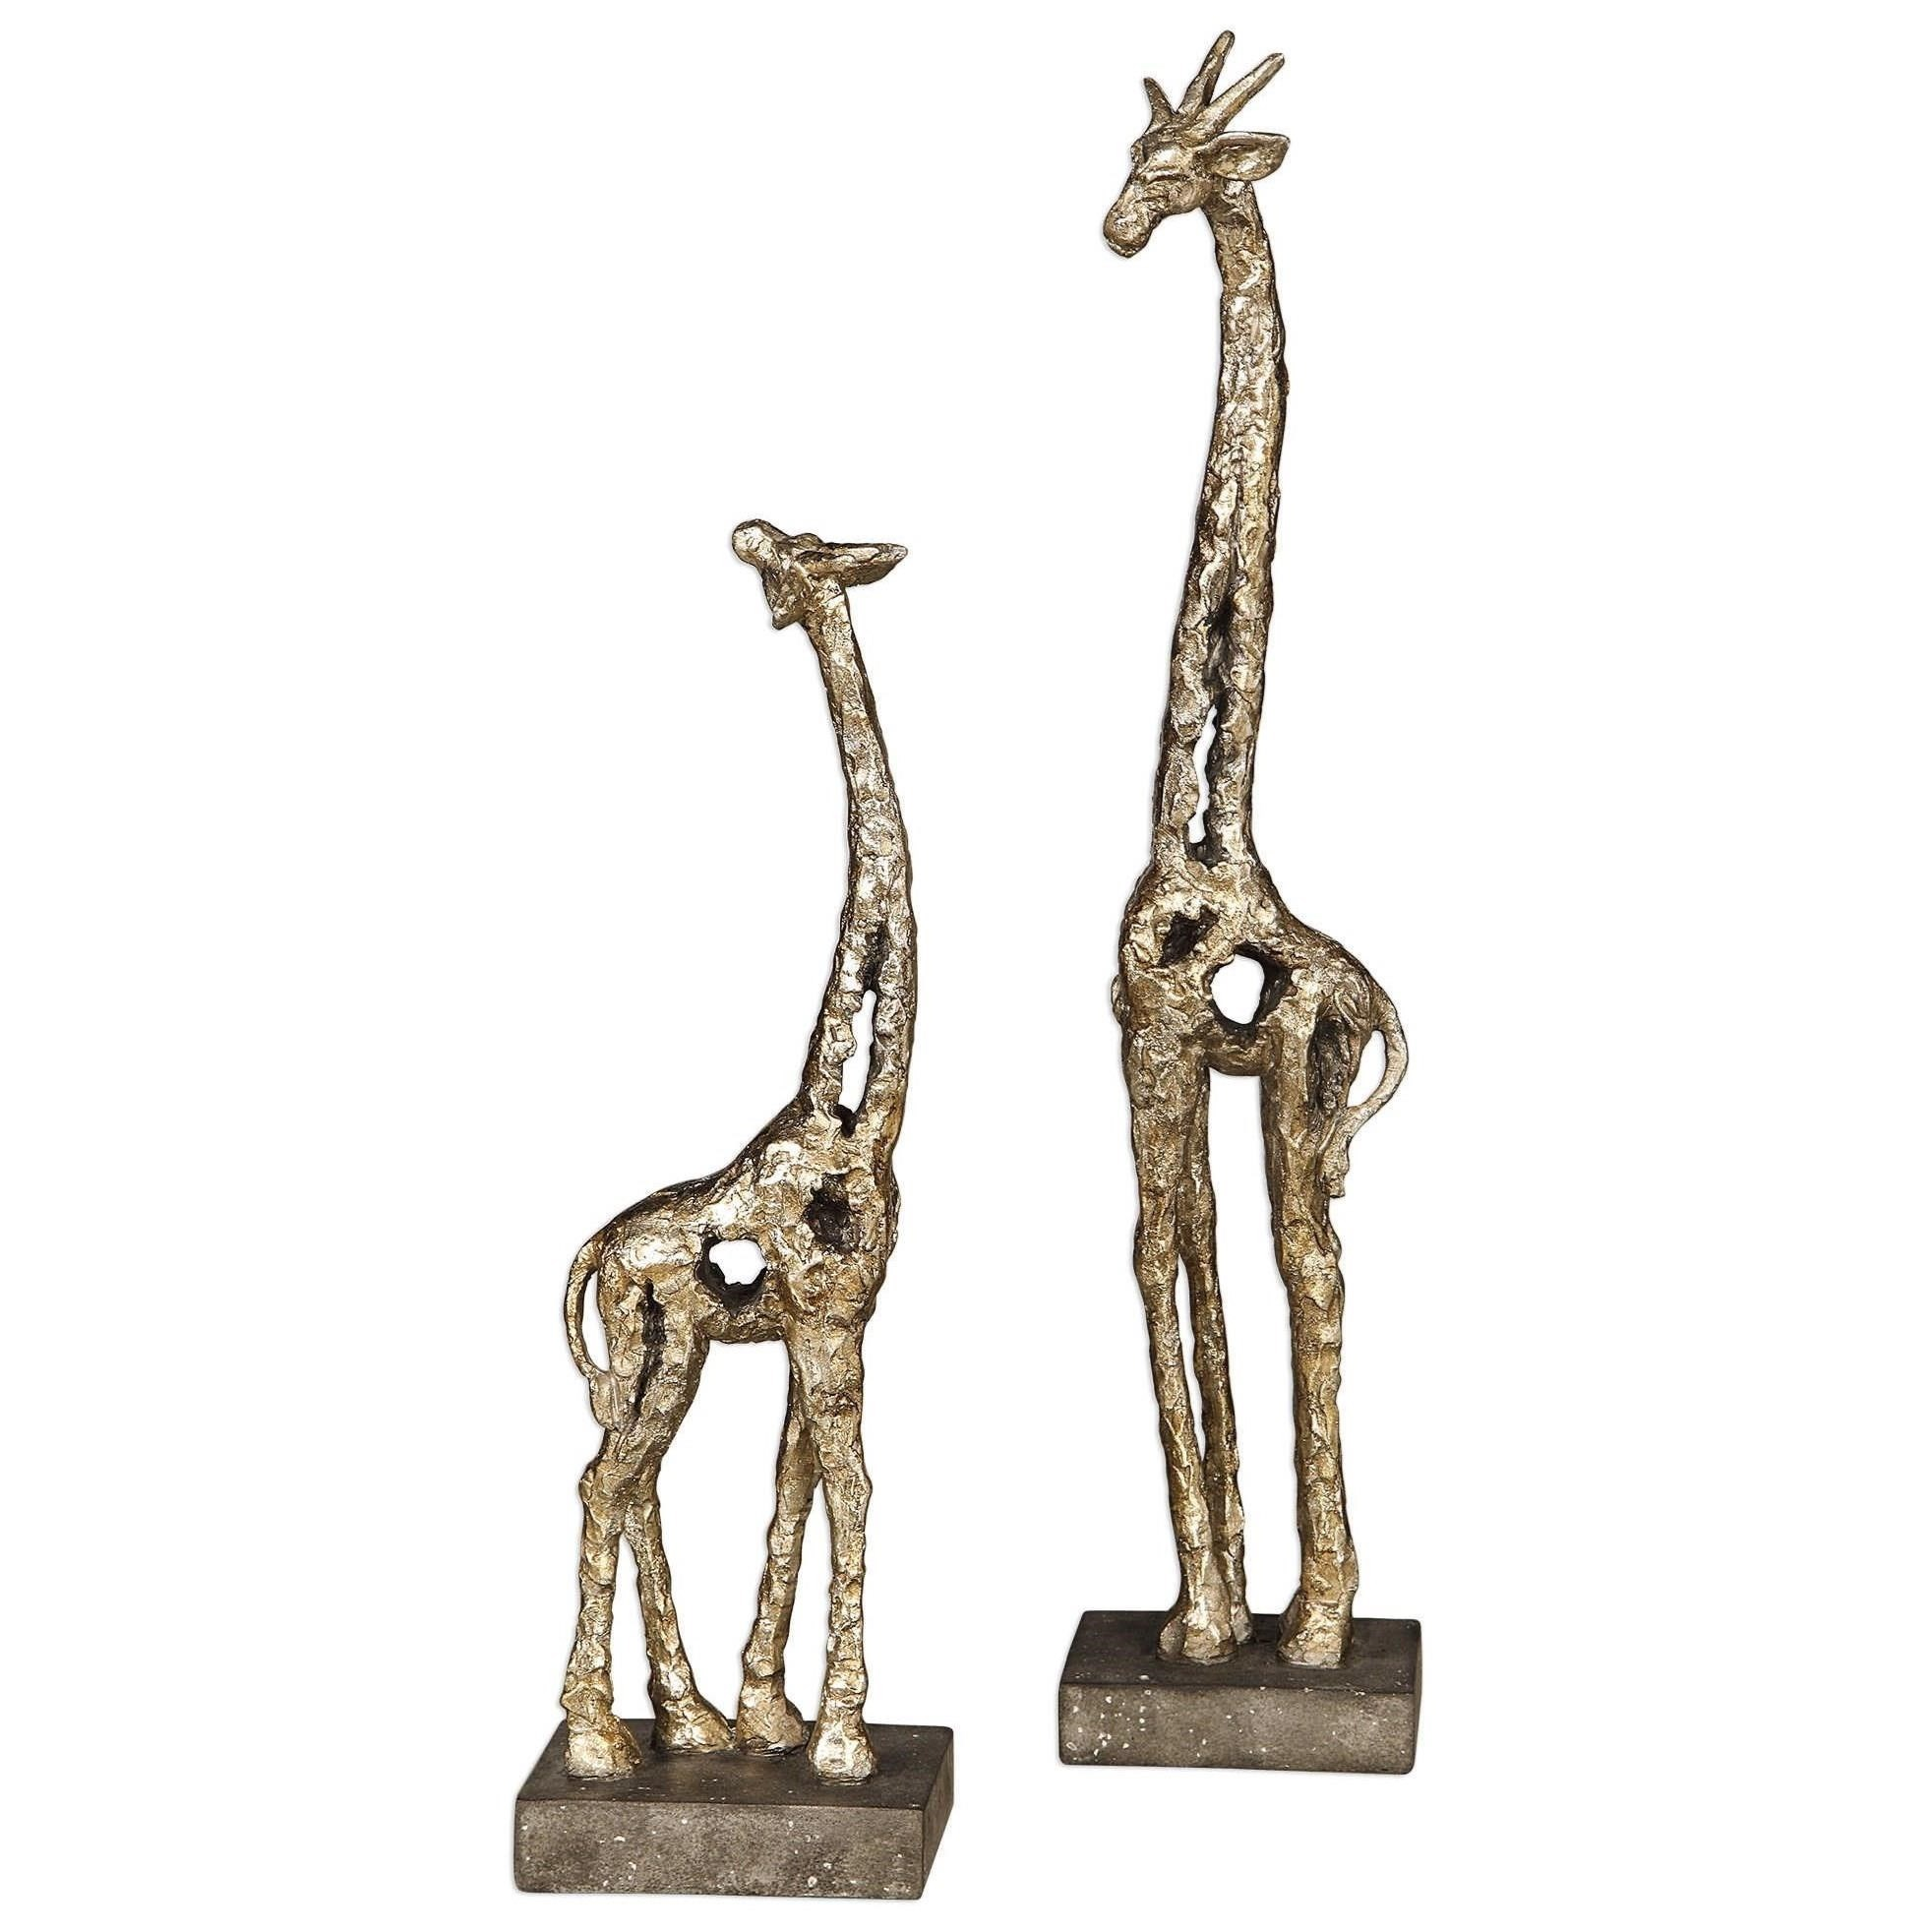 Accessories - Statues and Figurines Masai Giraffe Figurines, S/2 by Uttermost at Mueller Furniture